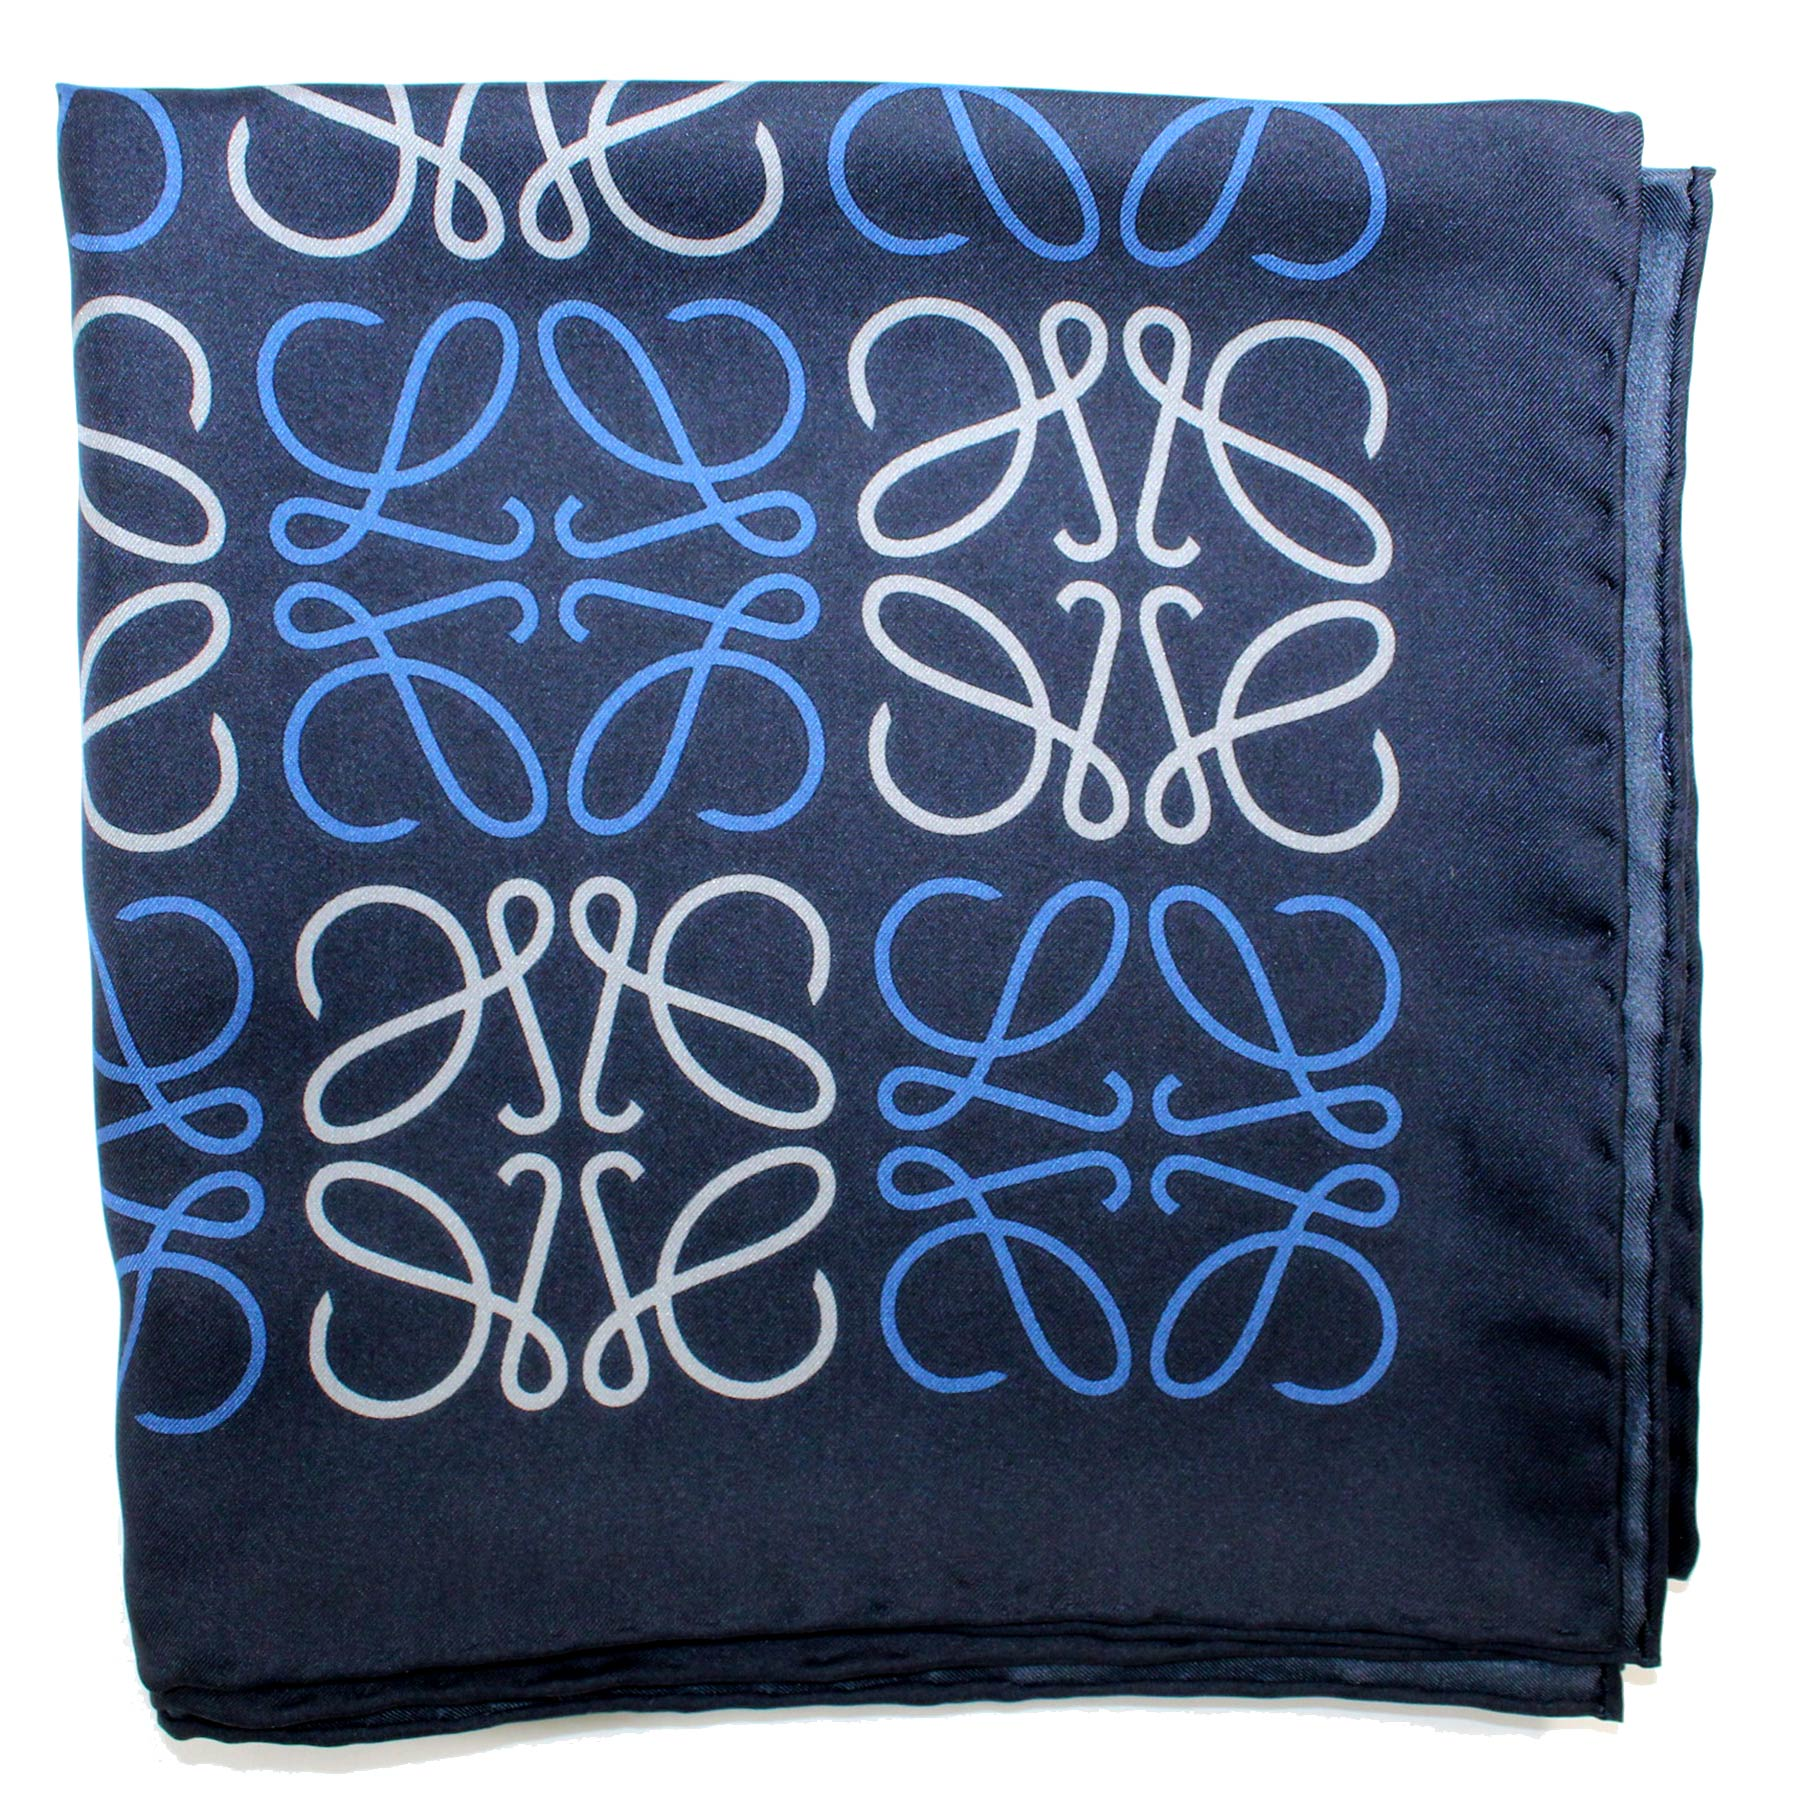 Loewe Scarf Navy Blue Anagram - Large Twill Silk Square Scarf